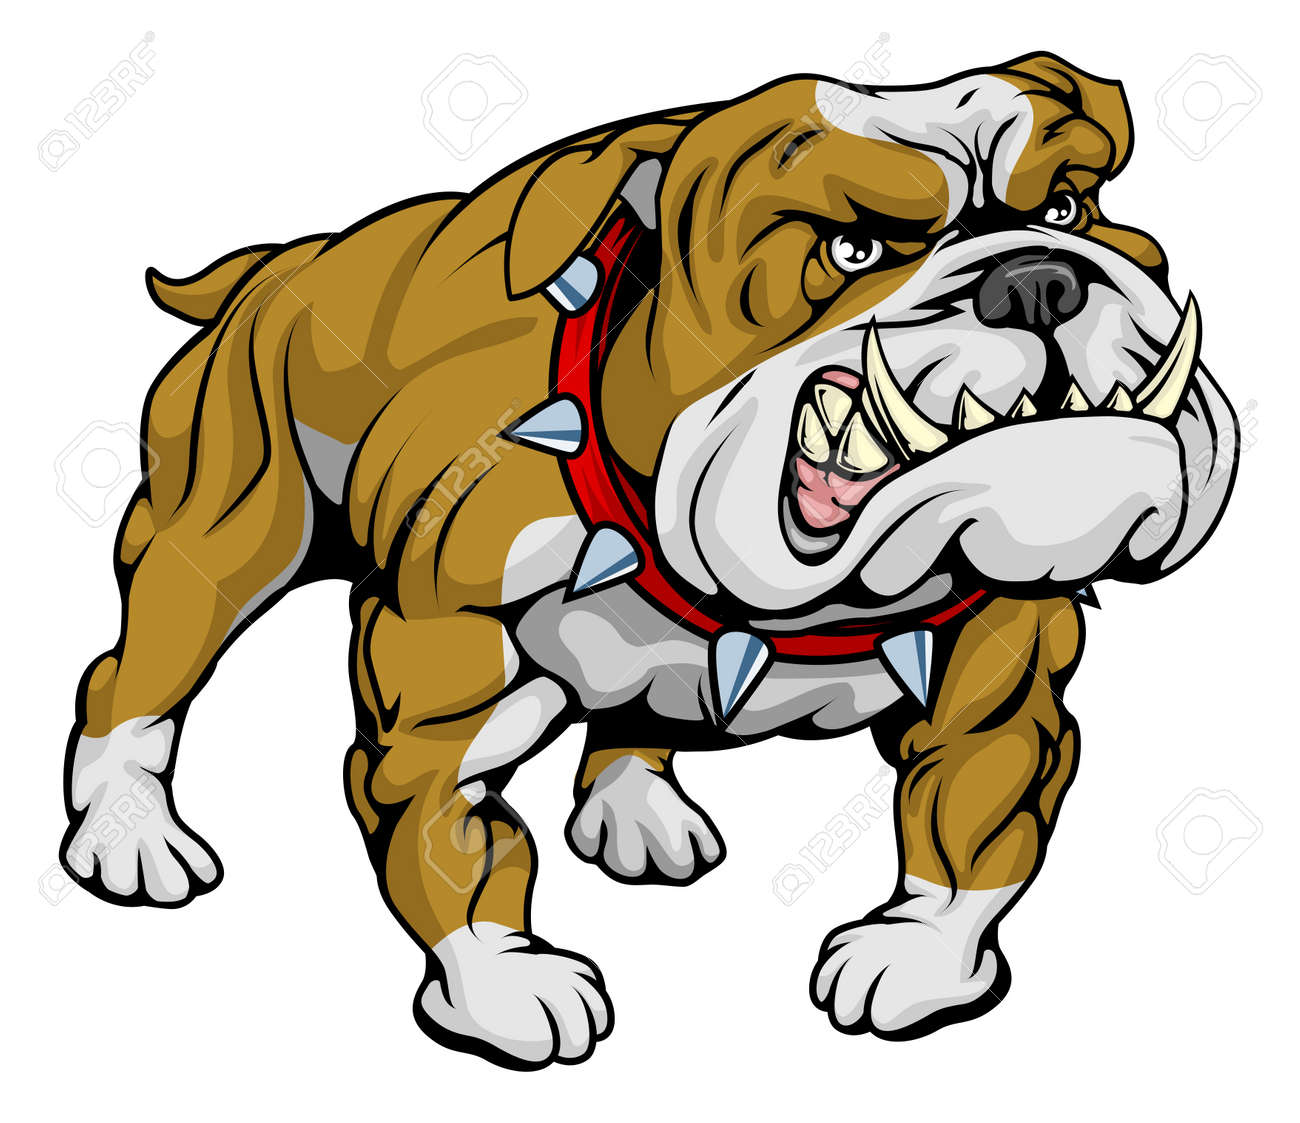 Angry Dog Images & Stock Pictures. Royalty Free Angry Dog Photos ...